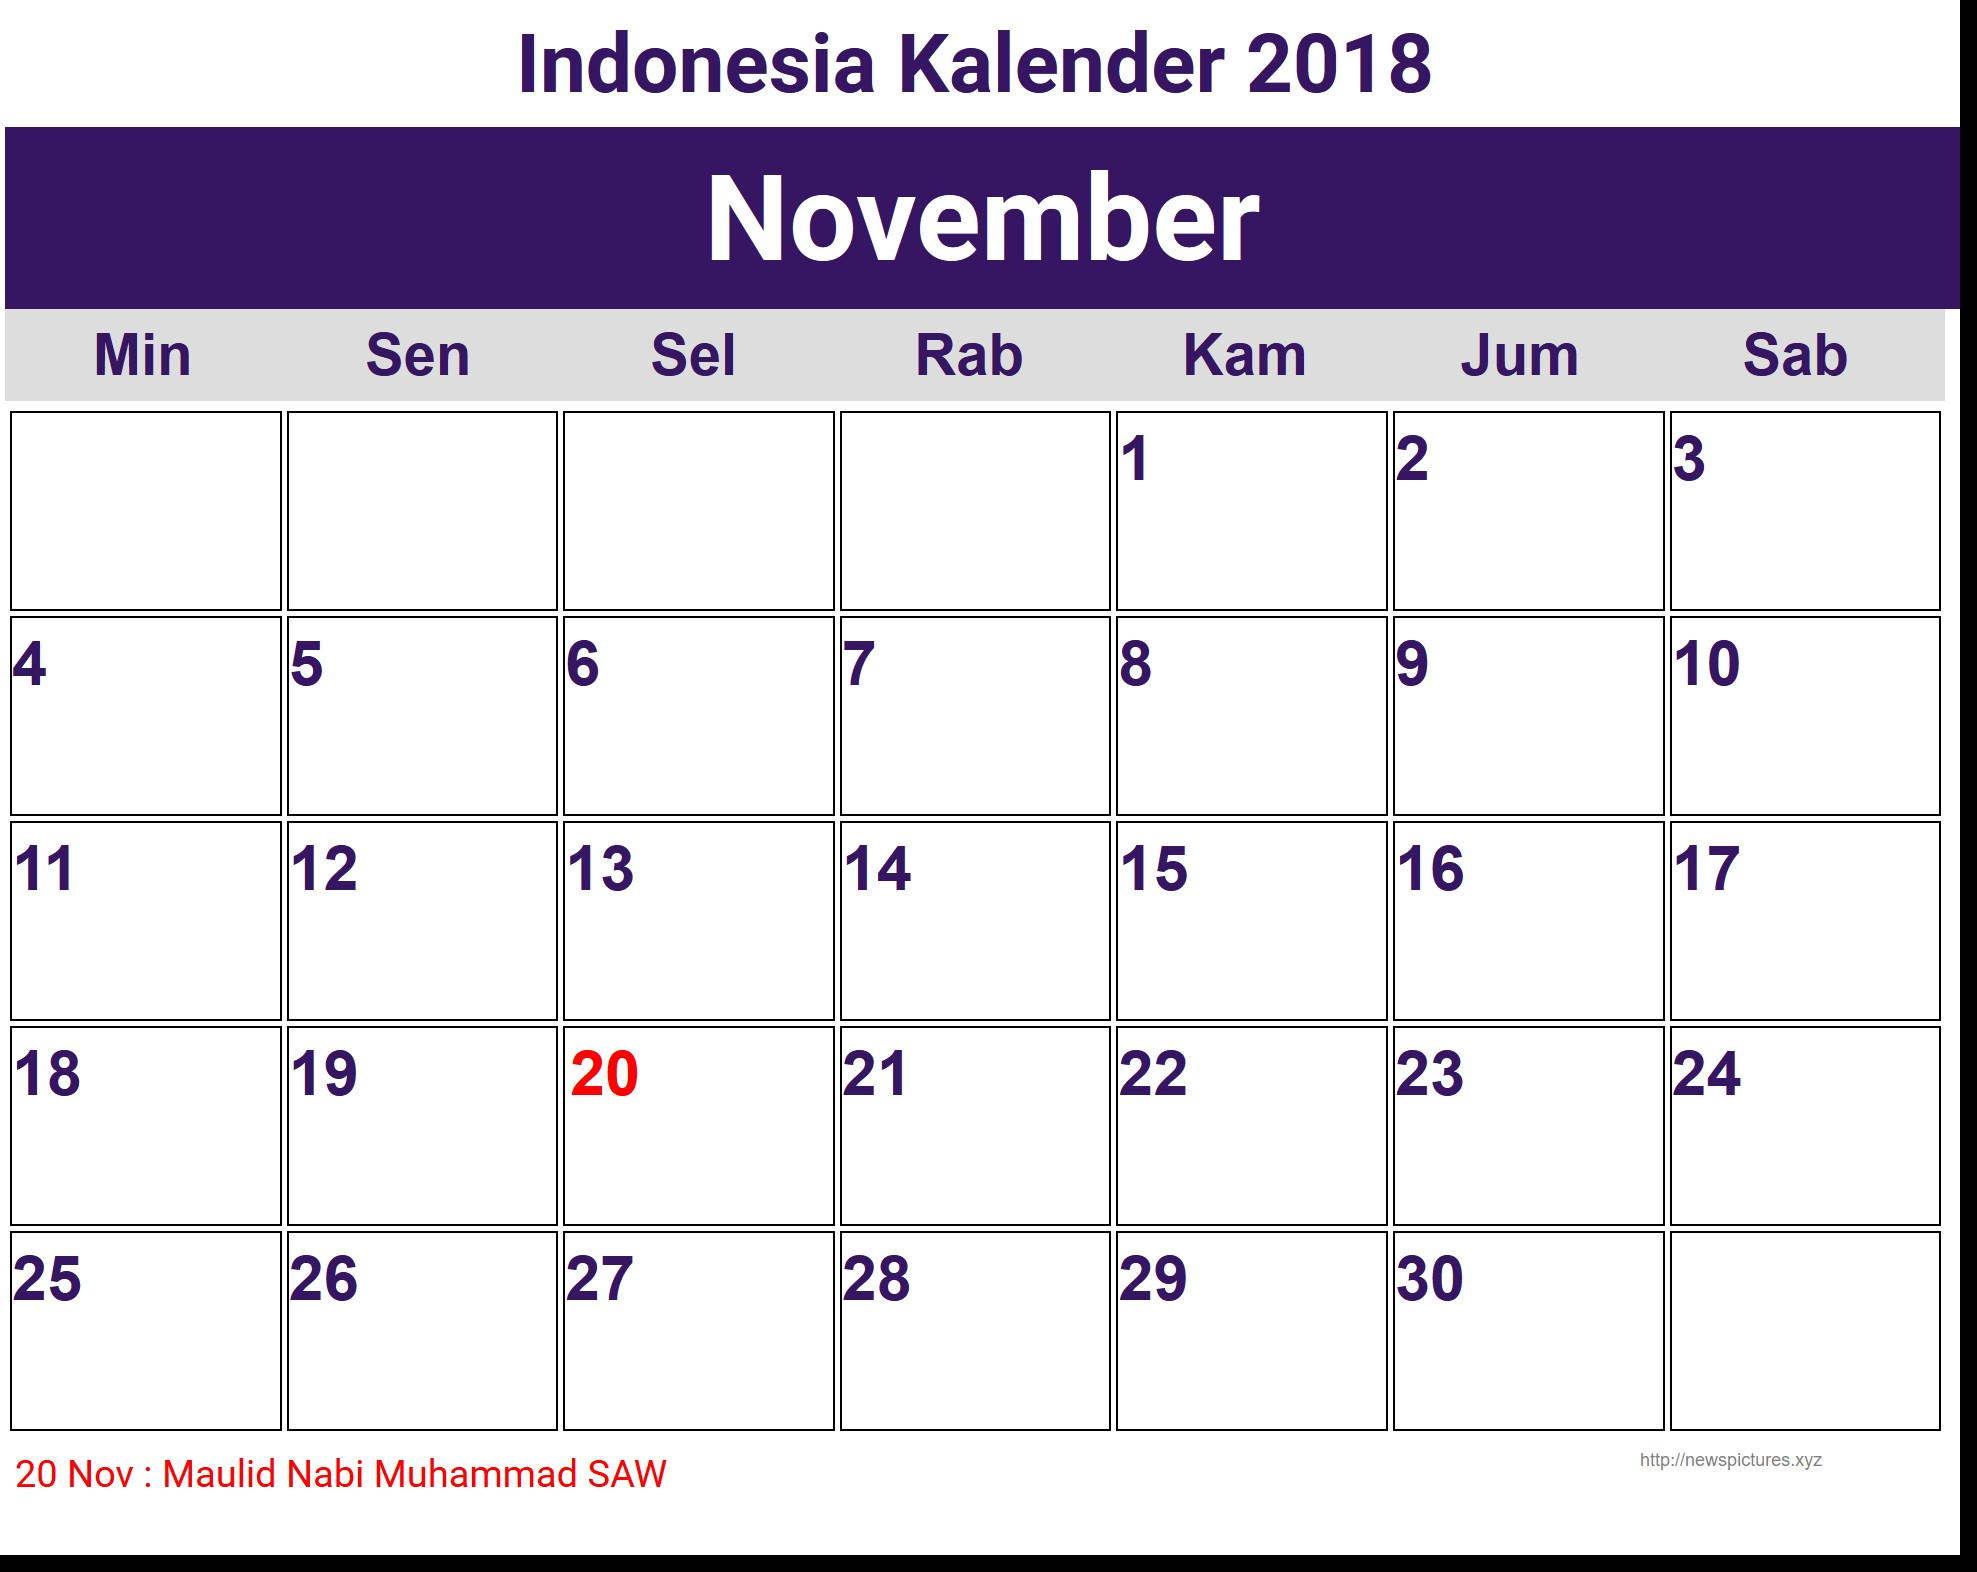 Image for November Indonesia Kalender 2018